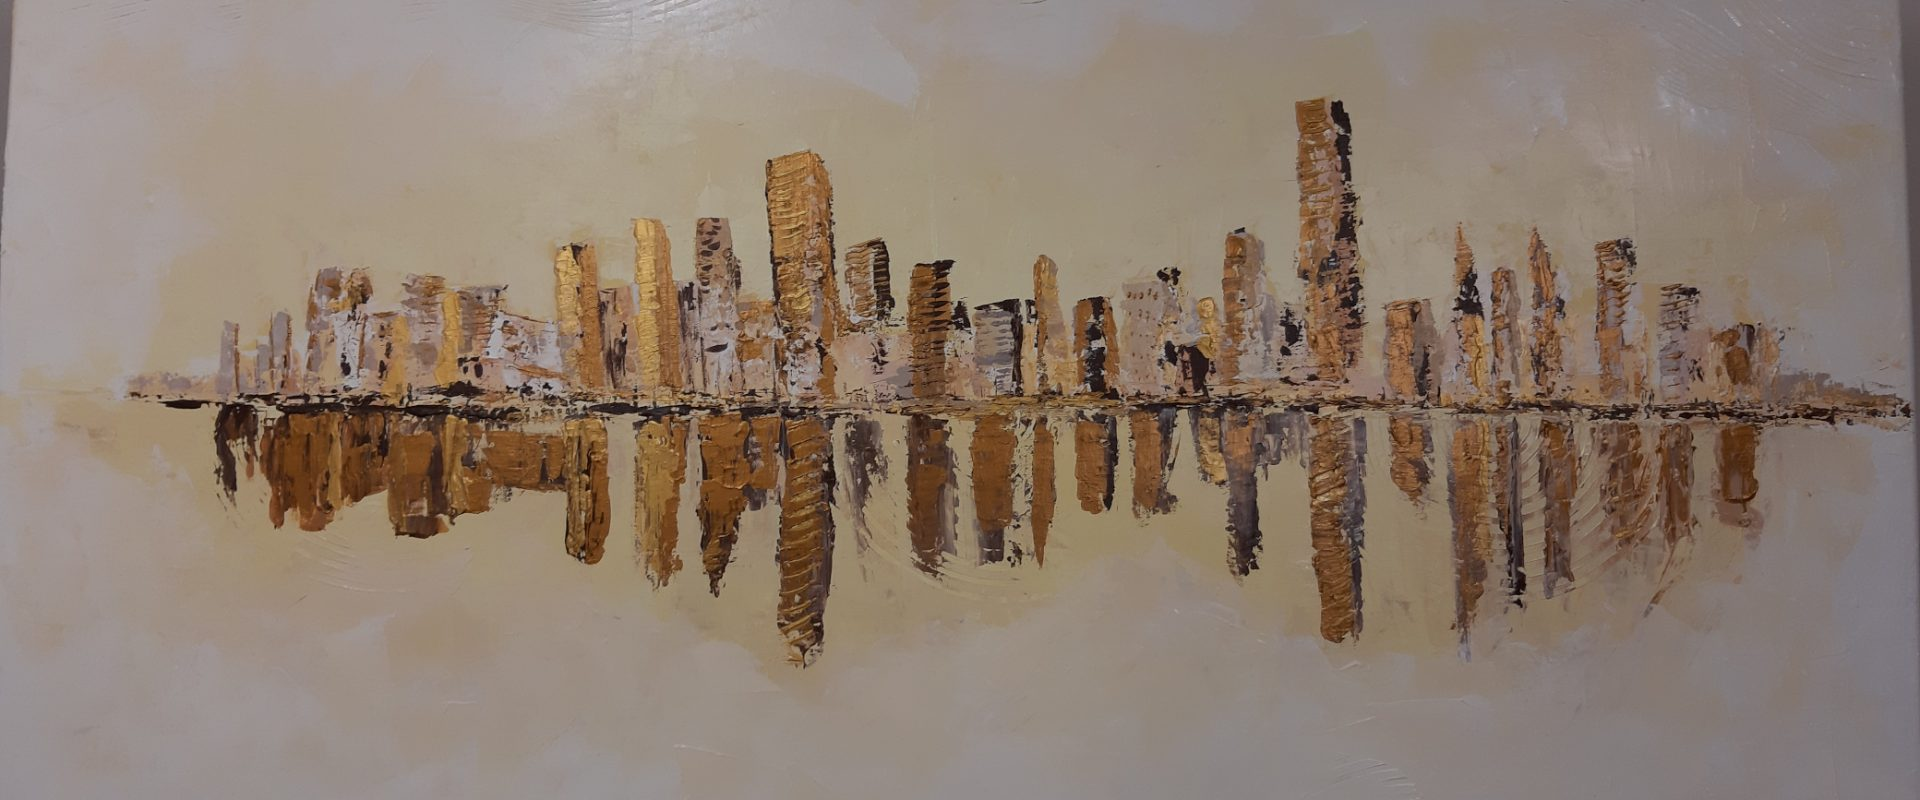 Abstract Skyline by DragansART